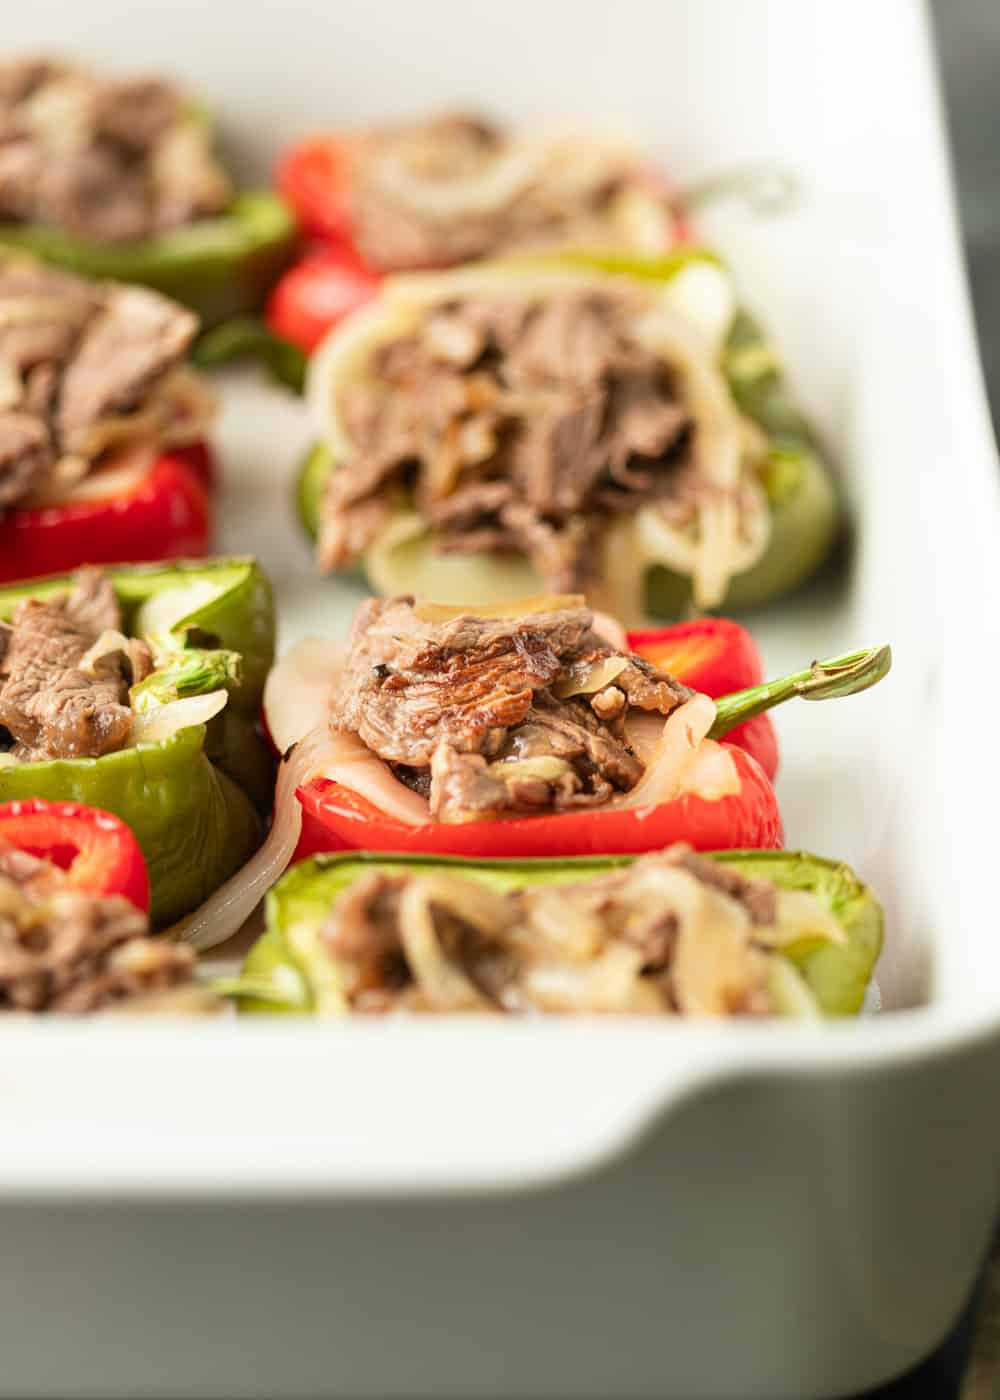 steak and onion stuffe dpeppers